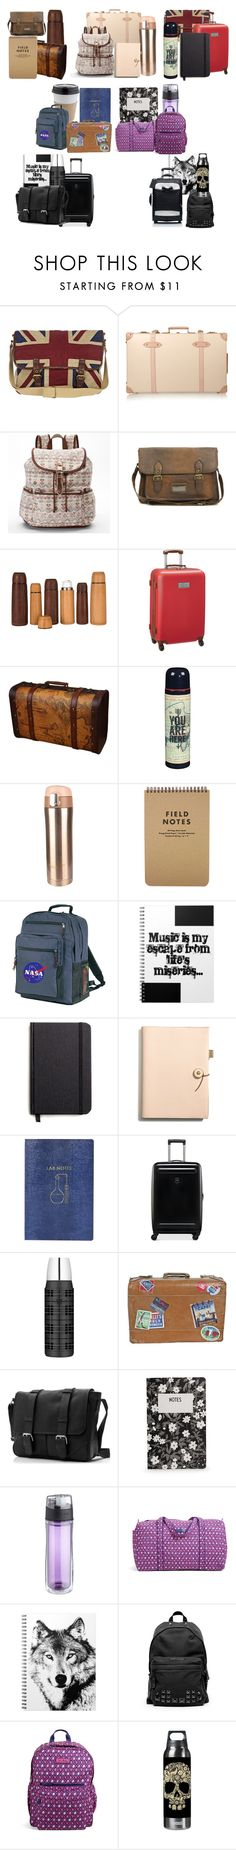 """""""Travel Sets"""" by jinx13a ❤ liked on Polyvore featuring Globe-Trotter, Candie's, ASOS, Jayson Home, Tommy Hilfiger, Wild & Wolf, Shinola, Coach, Topshop and Victorinox Swiss Army"""